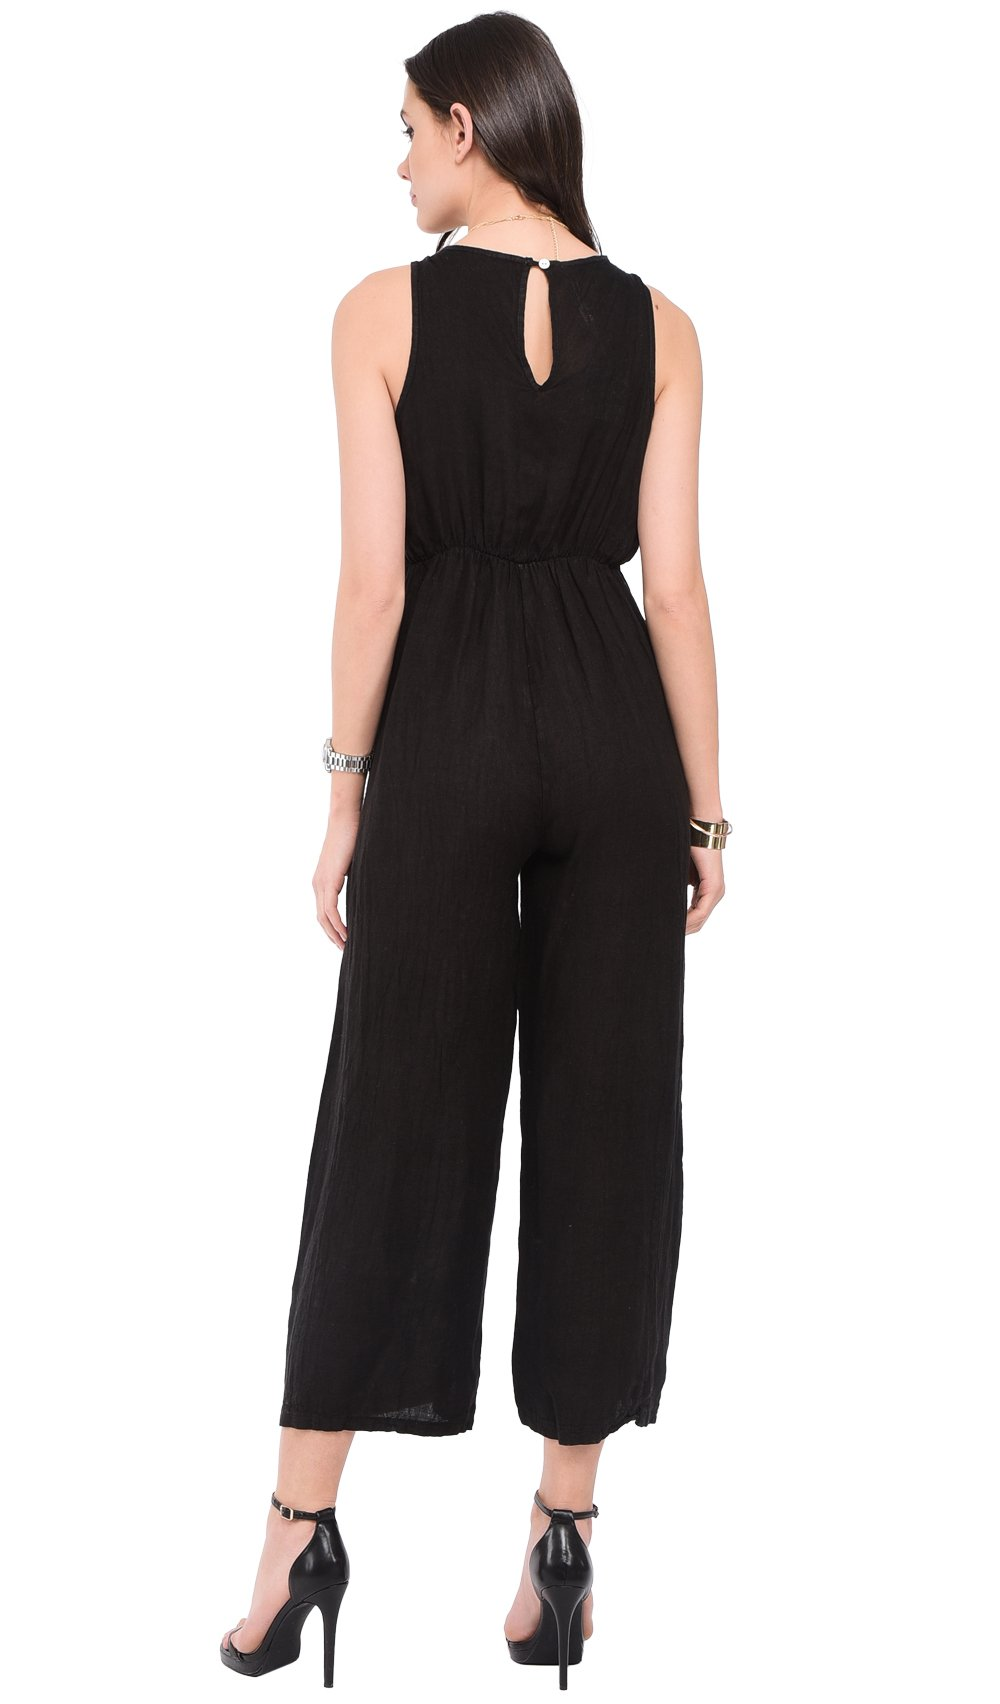 FAKE HEART-CACHE JUMPSUIT WITH BACK OPENING AND POCKETS